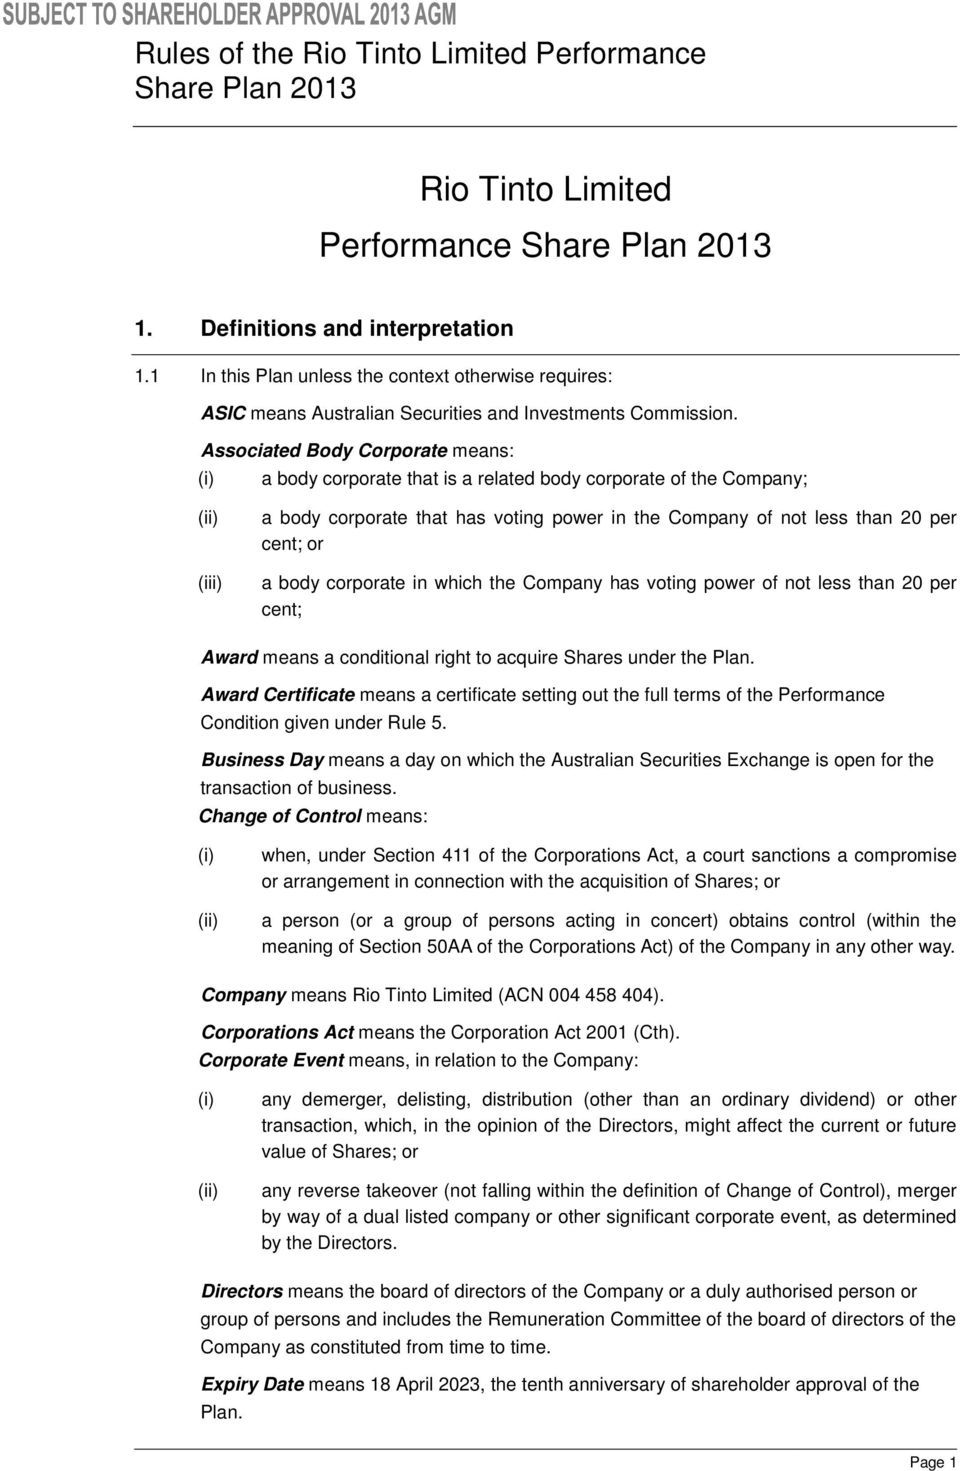 body corporate in which the Company has voting power of not less than 20 per cent; Award means a conditional right to acquire Shares under the Plan.